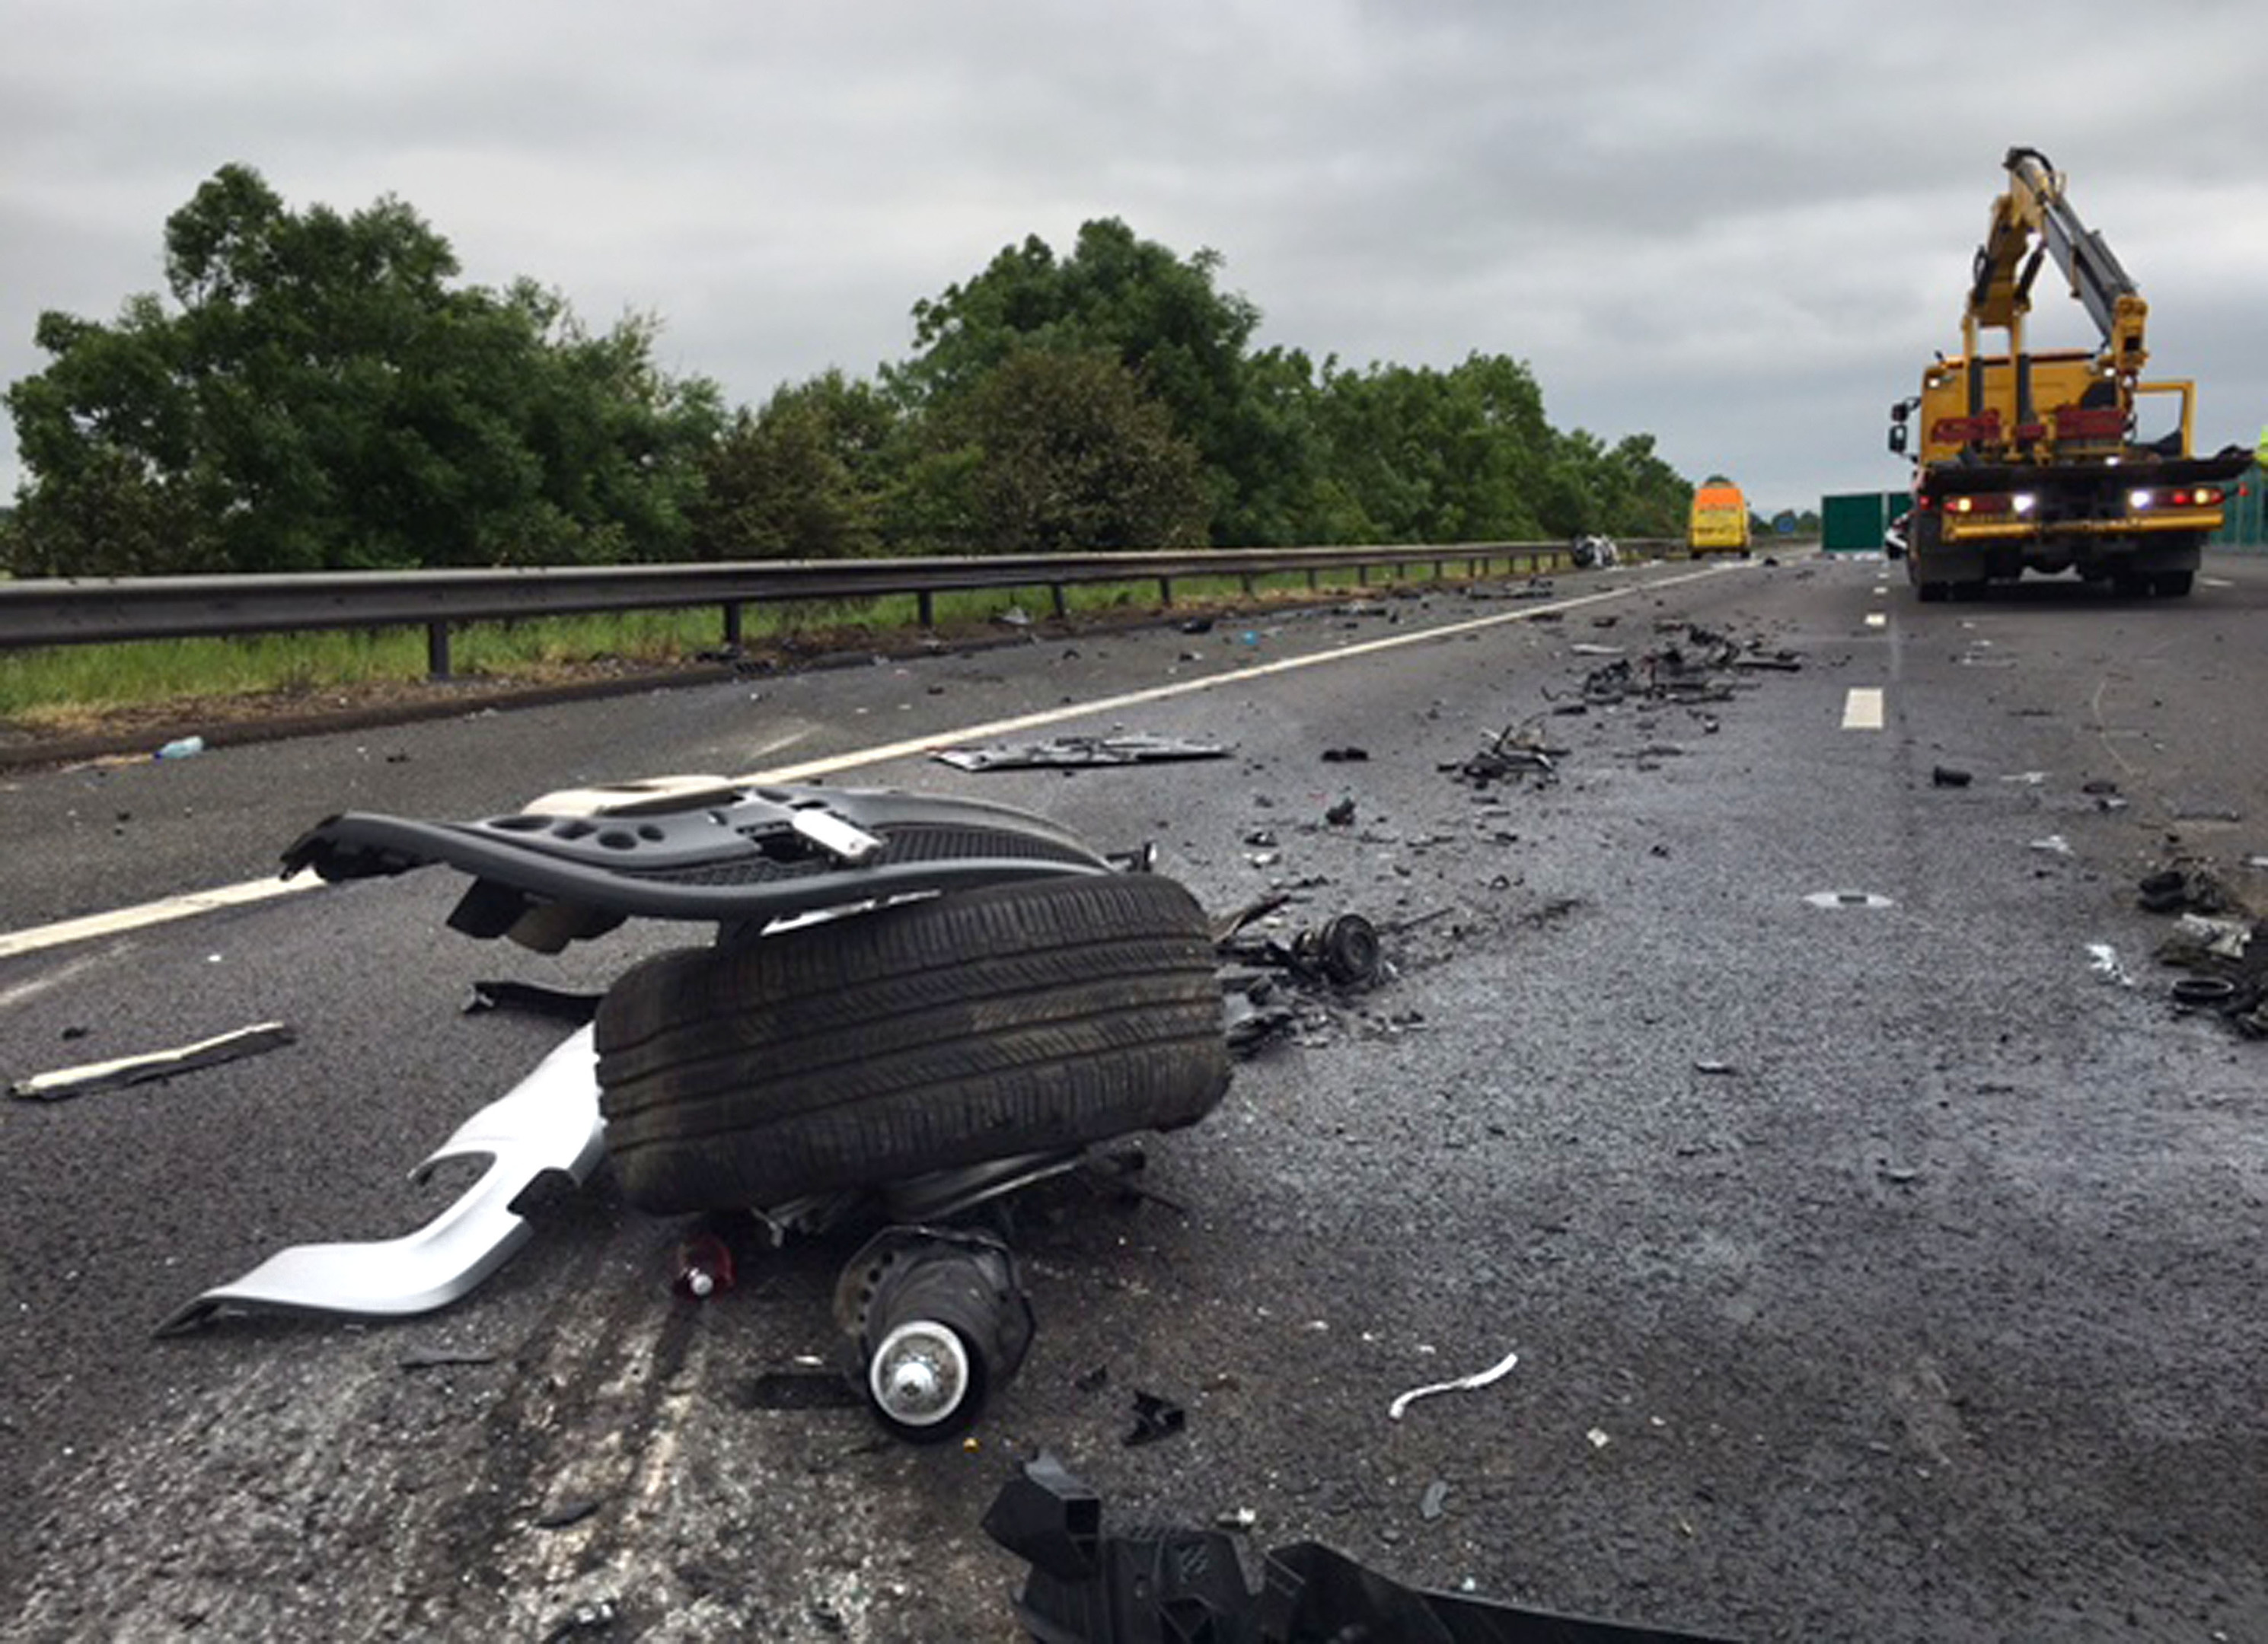 The scene of a crash on the M5 motorway.